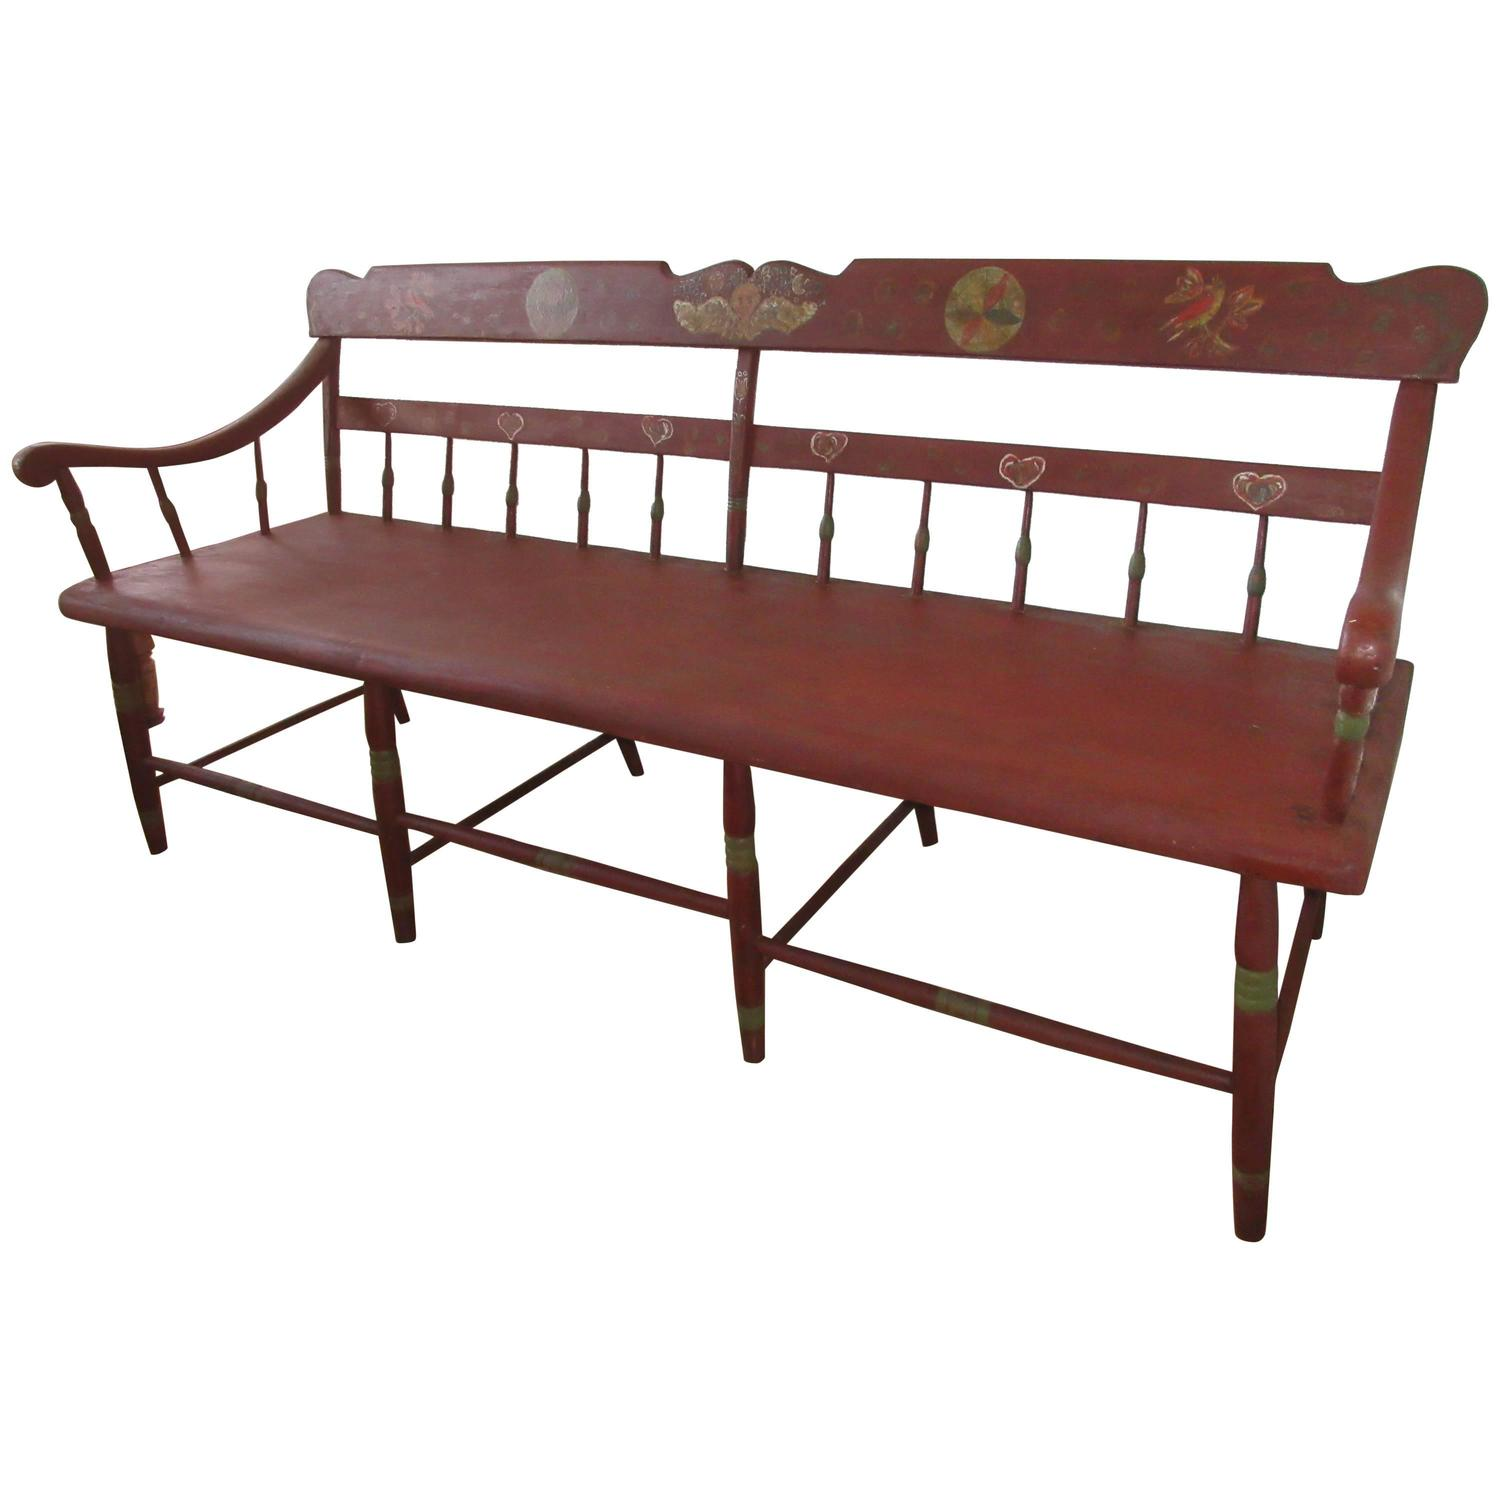 Late 19th Century Pennsylvania Deacons Bench Or Settle At 1stdibs